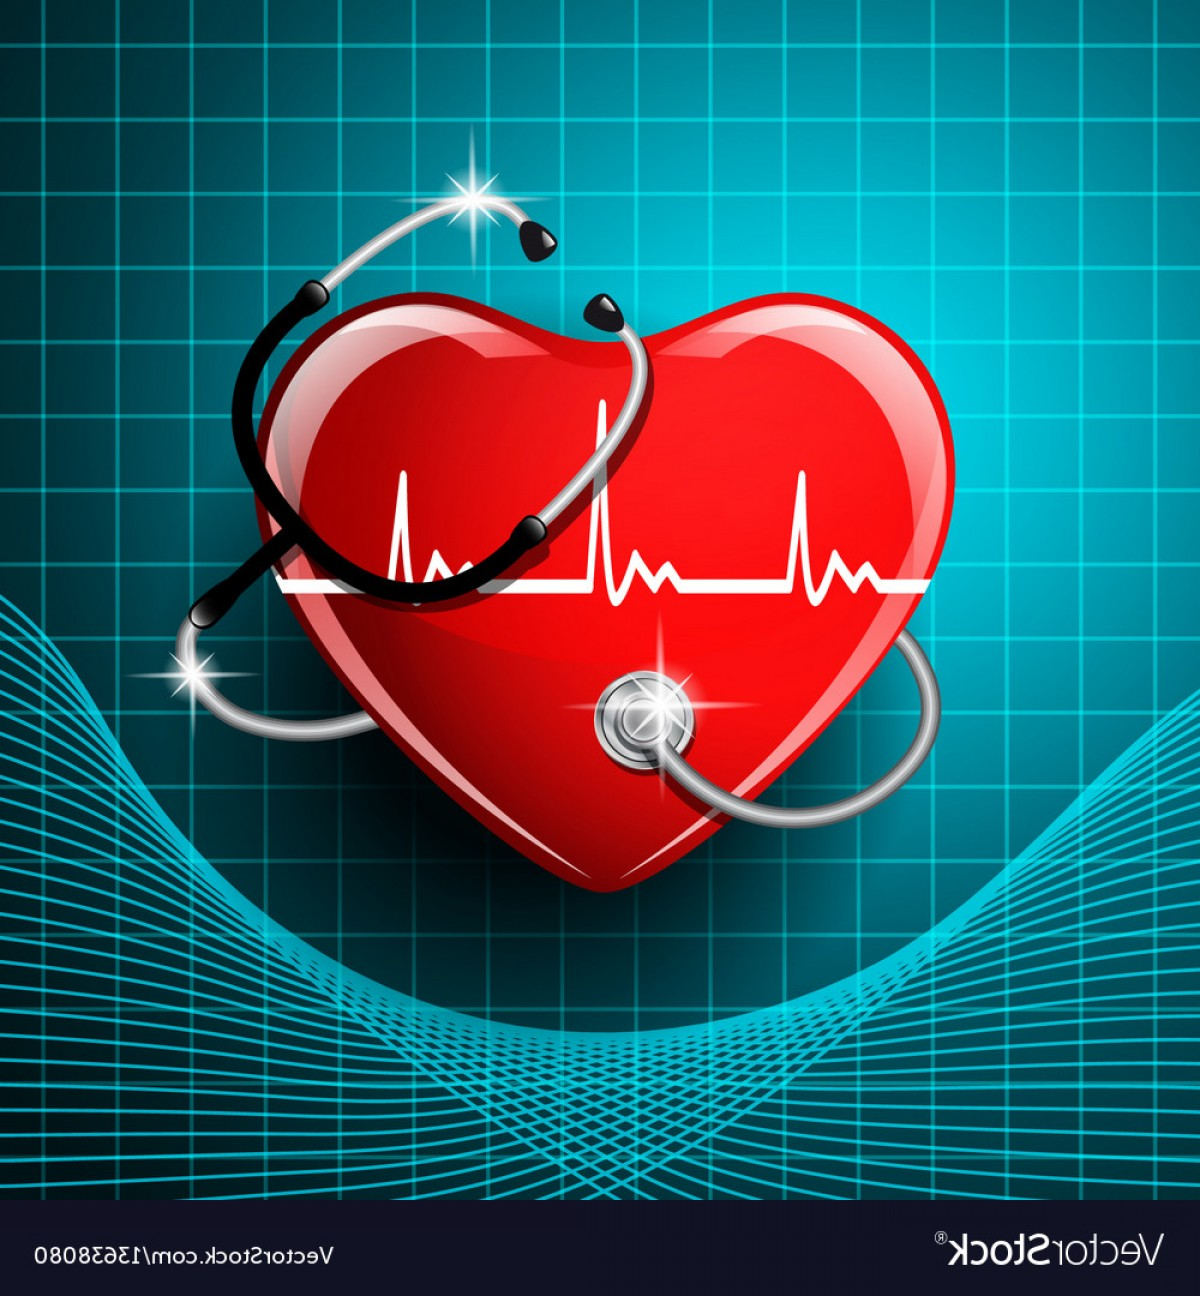 Stethoscope With Heart Vector Art: Stethoscope Medical Equipment Heart Shape Vector